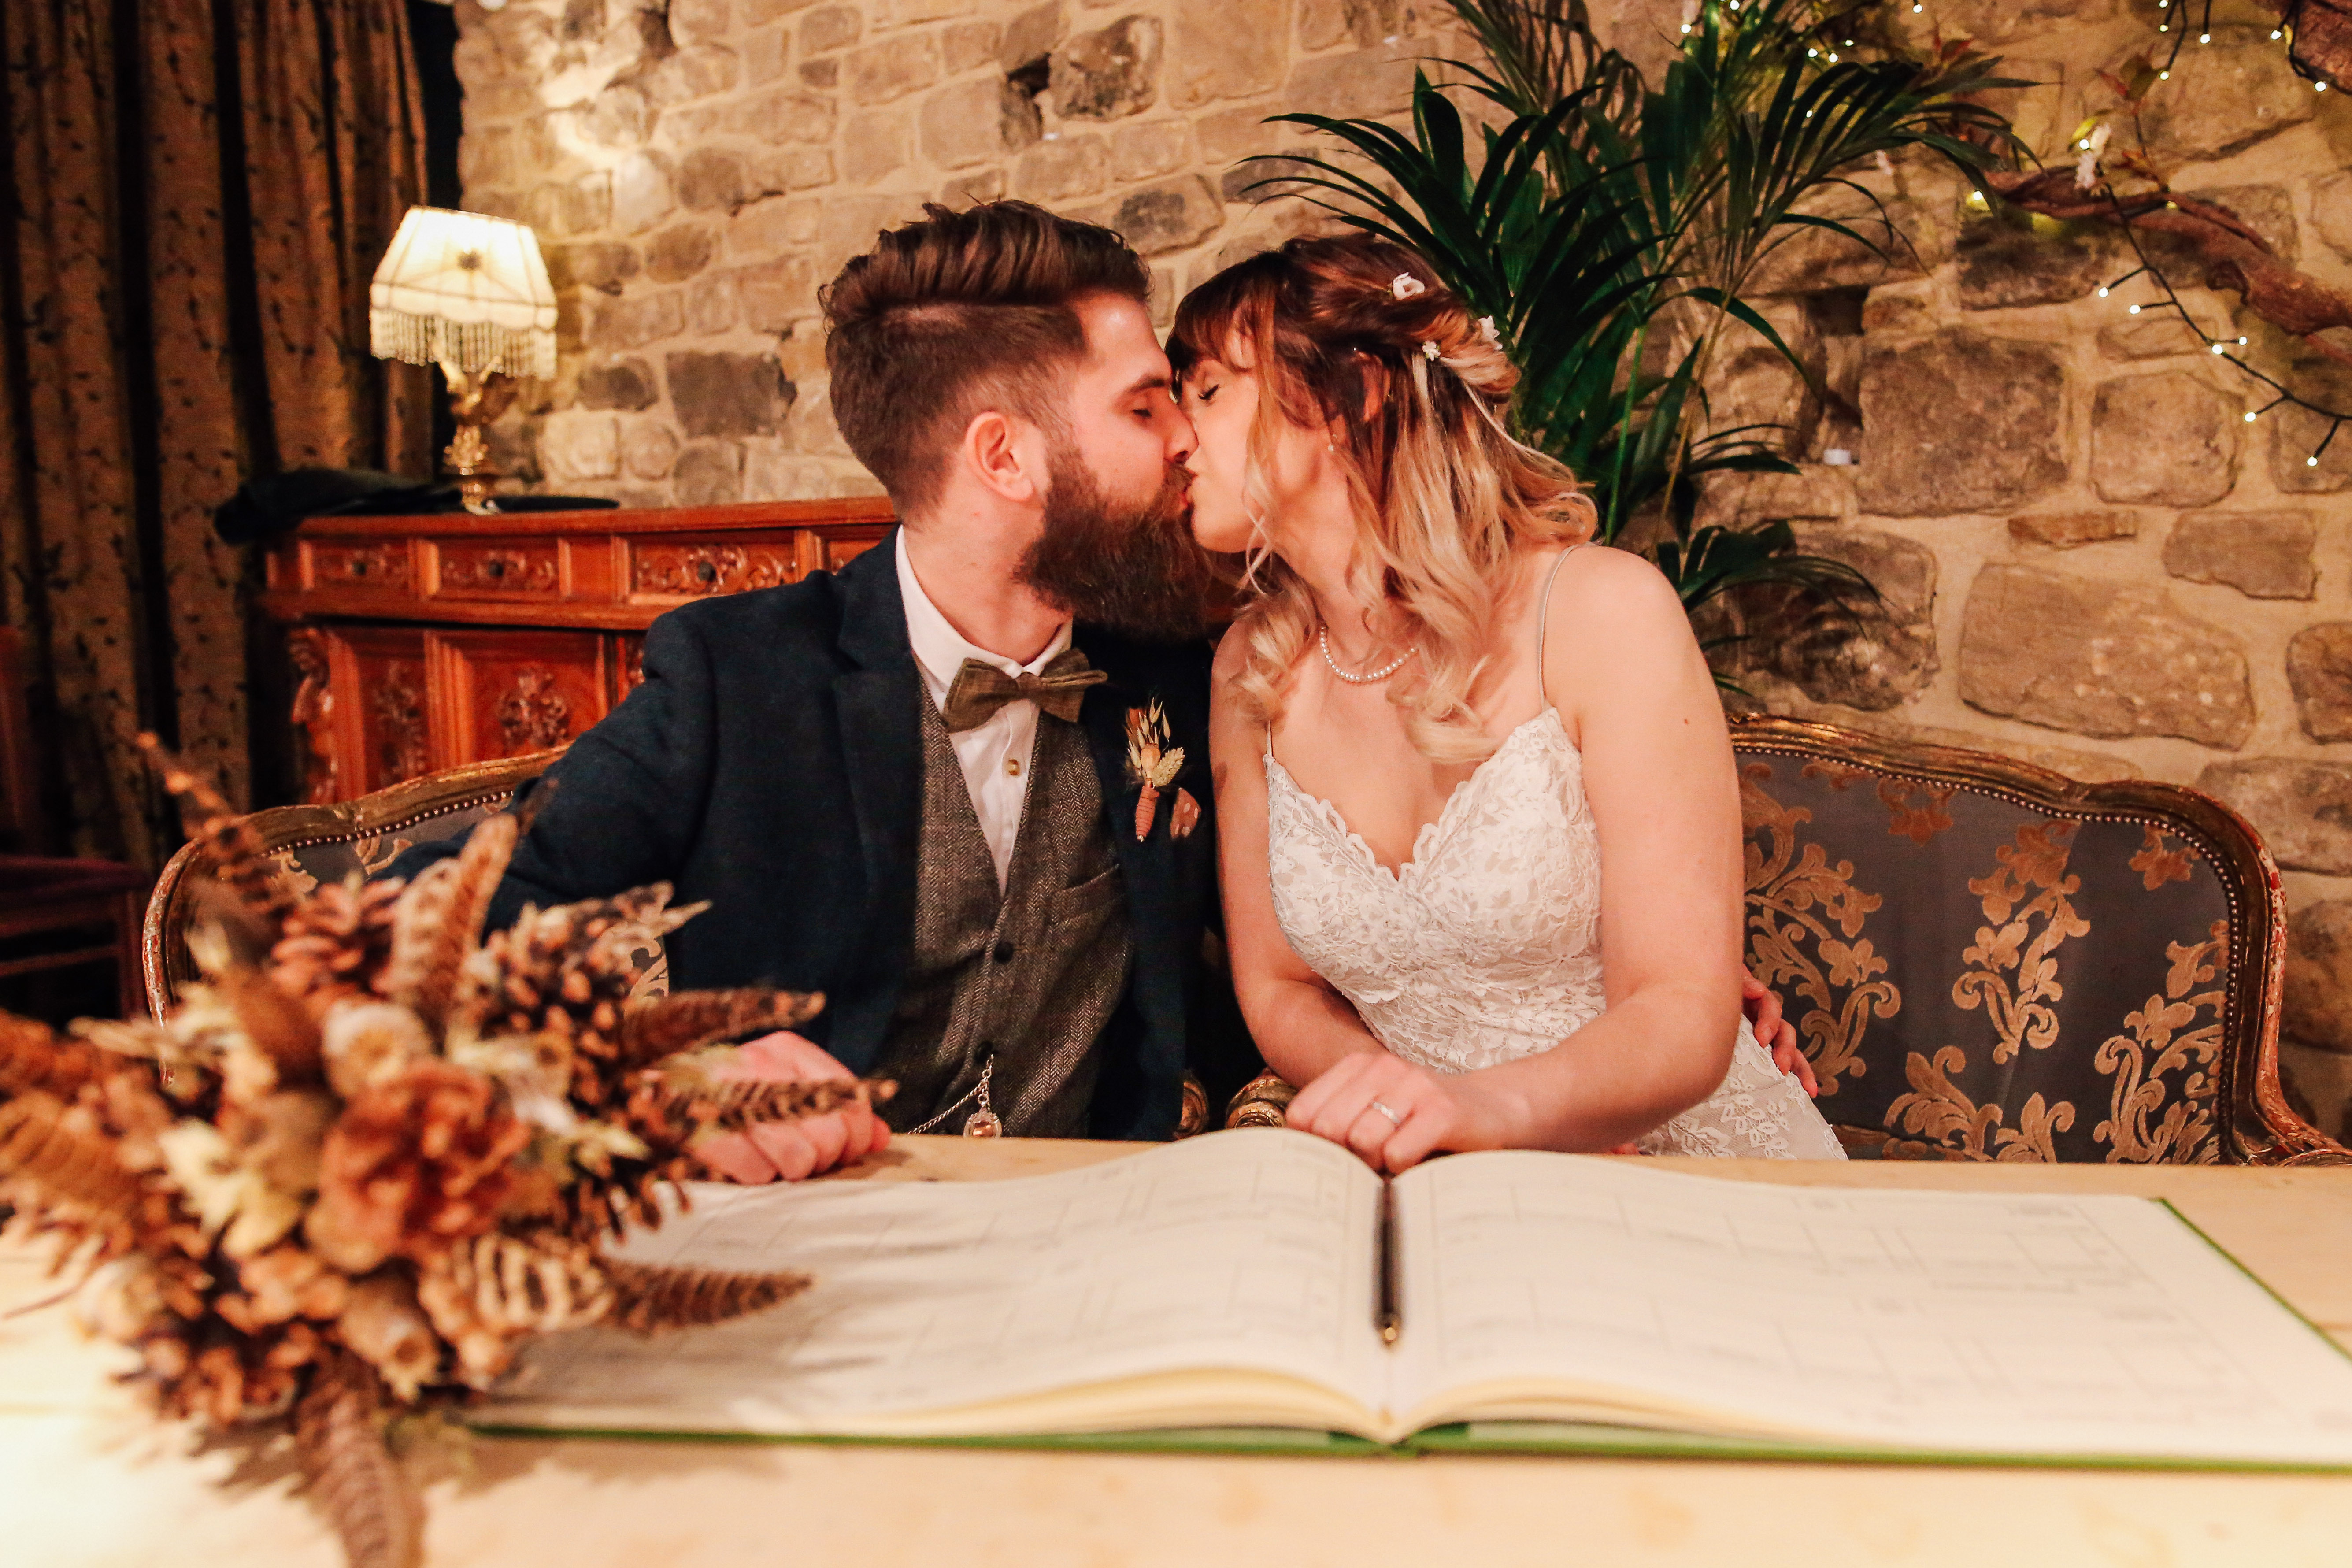 Signing the register As You Like It Wedding Photography